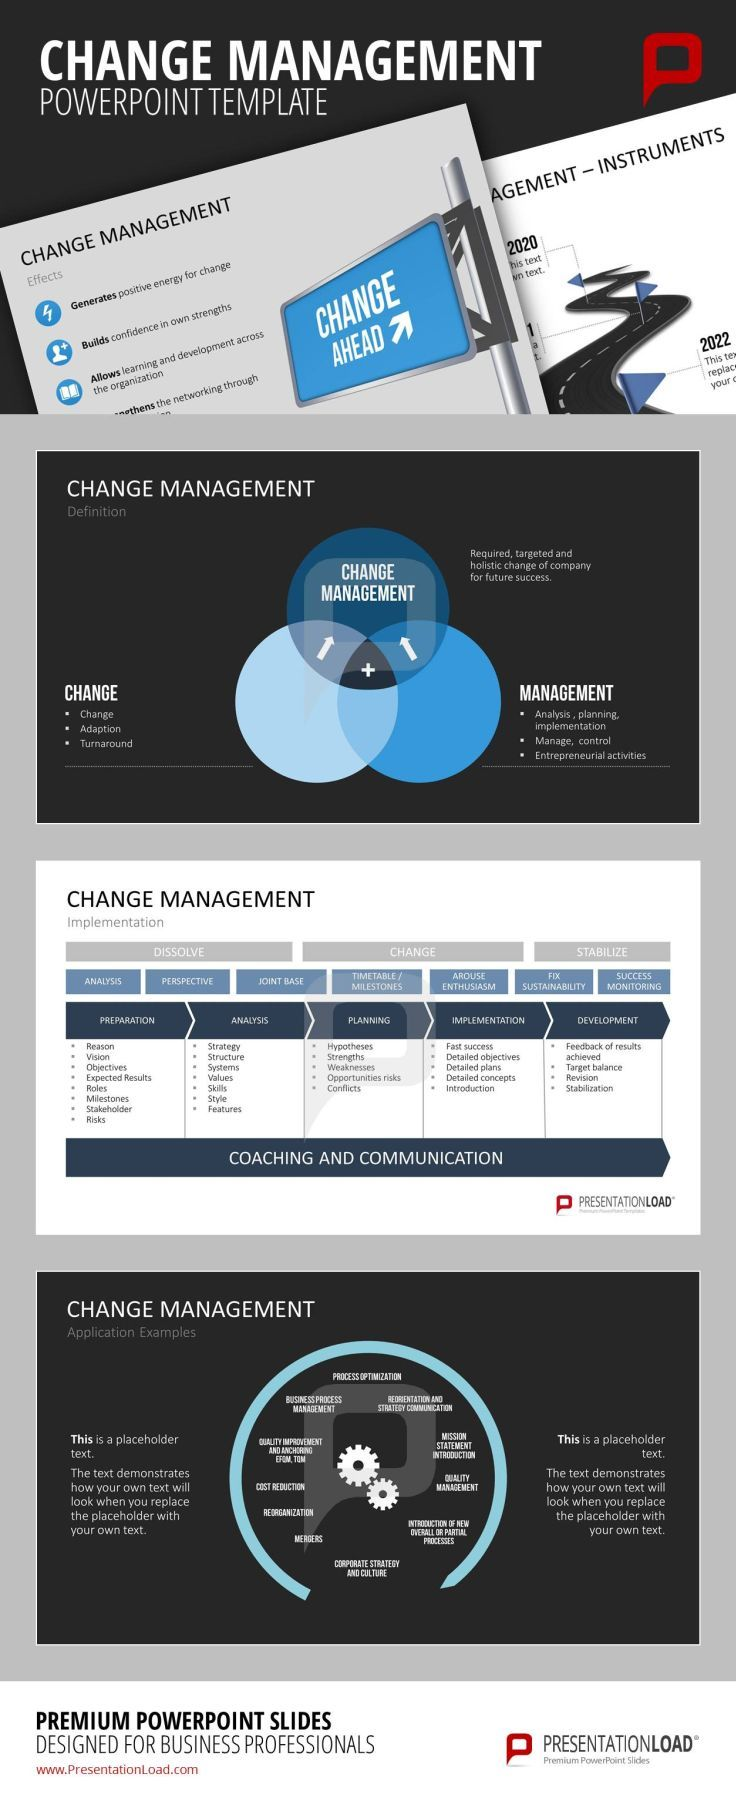 1000 images about change management powerpoint templates on pinterest. Black Bedroom Furniture Sets. Home Design Ideas